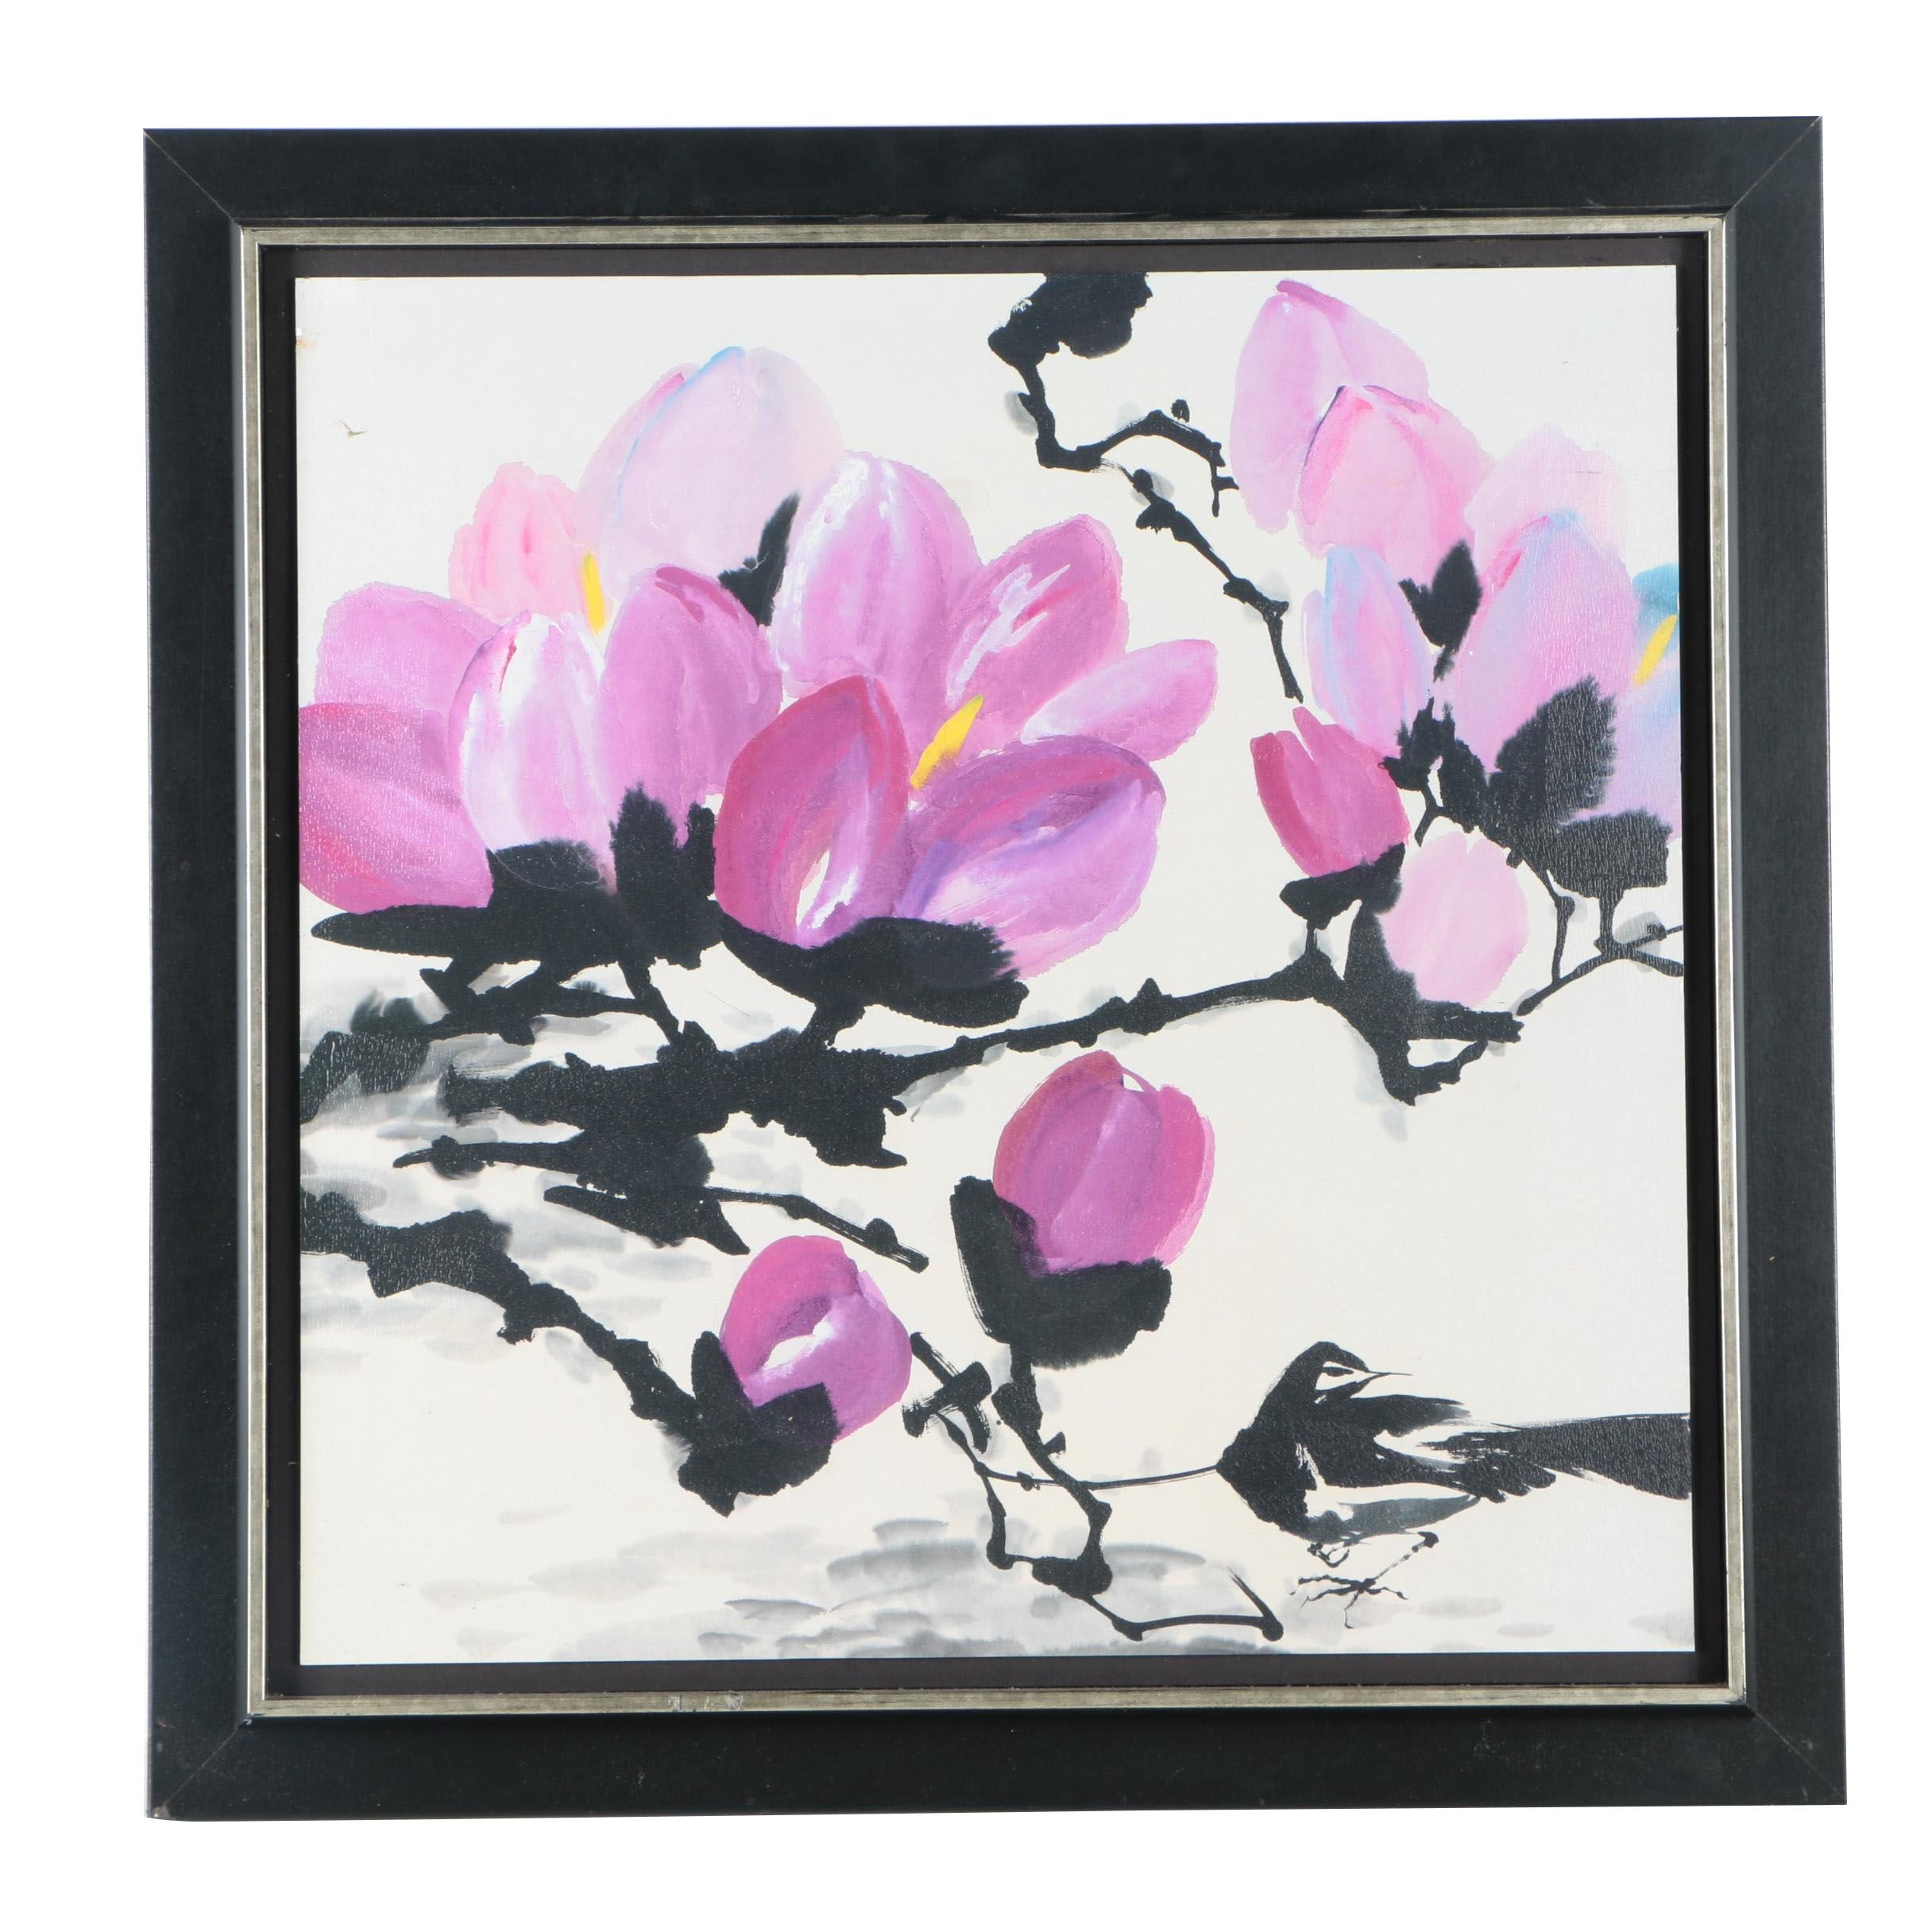 Offset Lithograph of Floral Branches